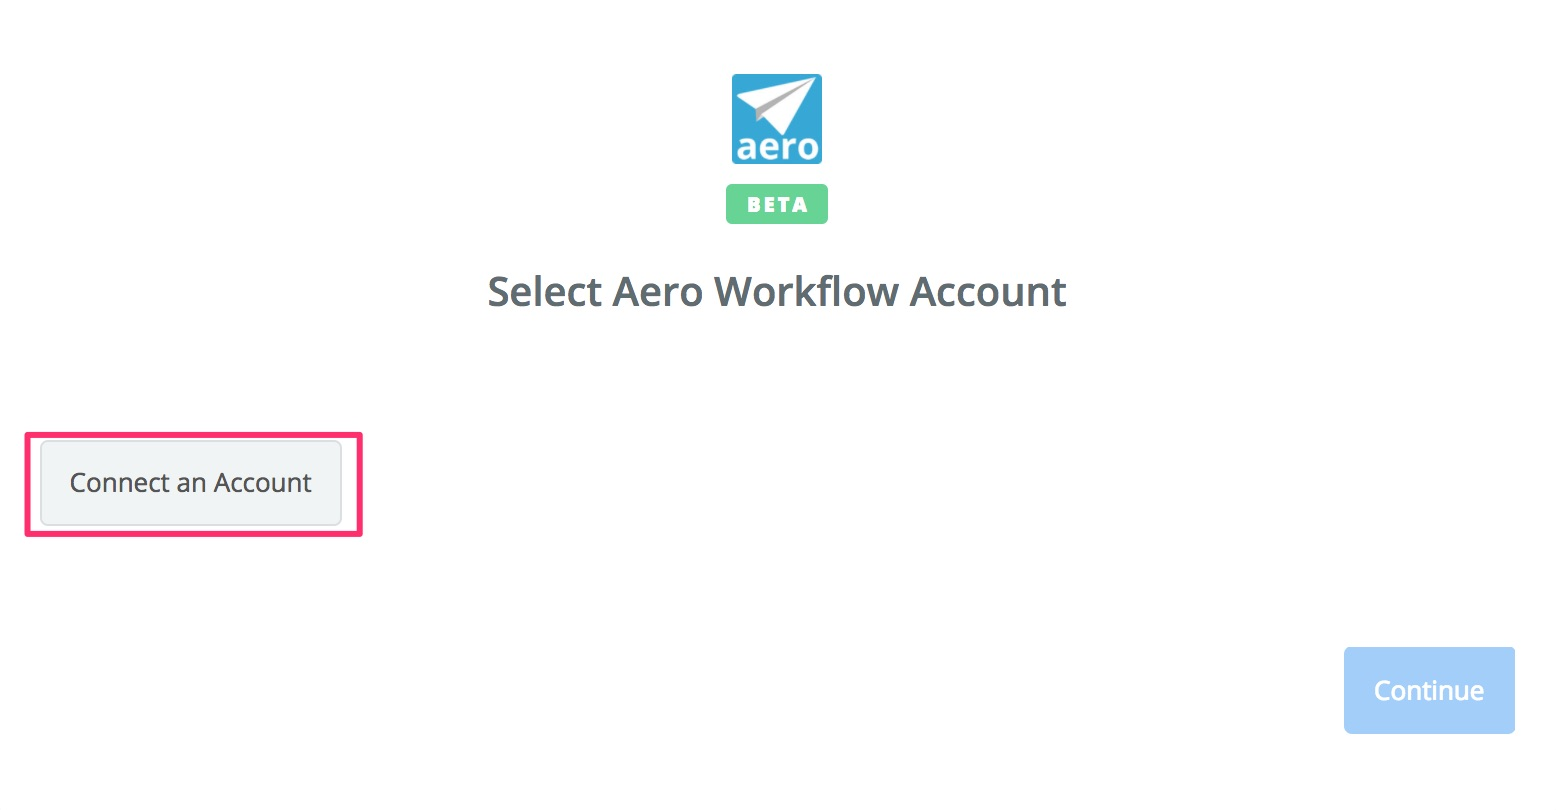 Click to connect Aero Workflow